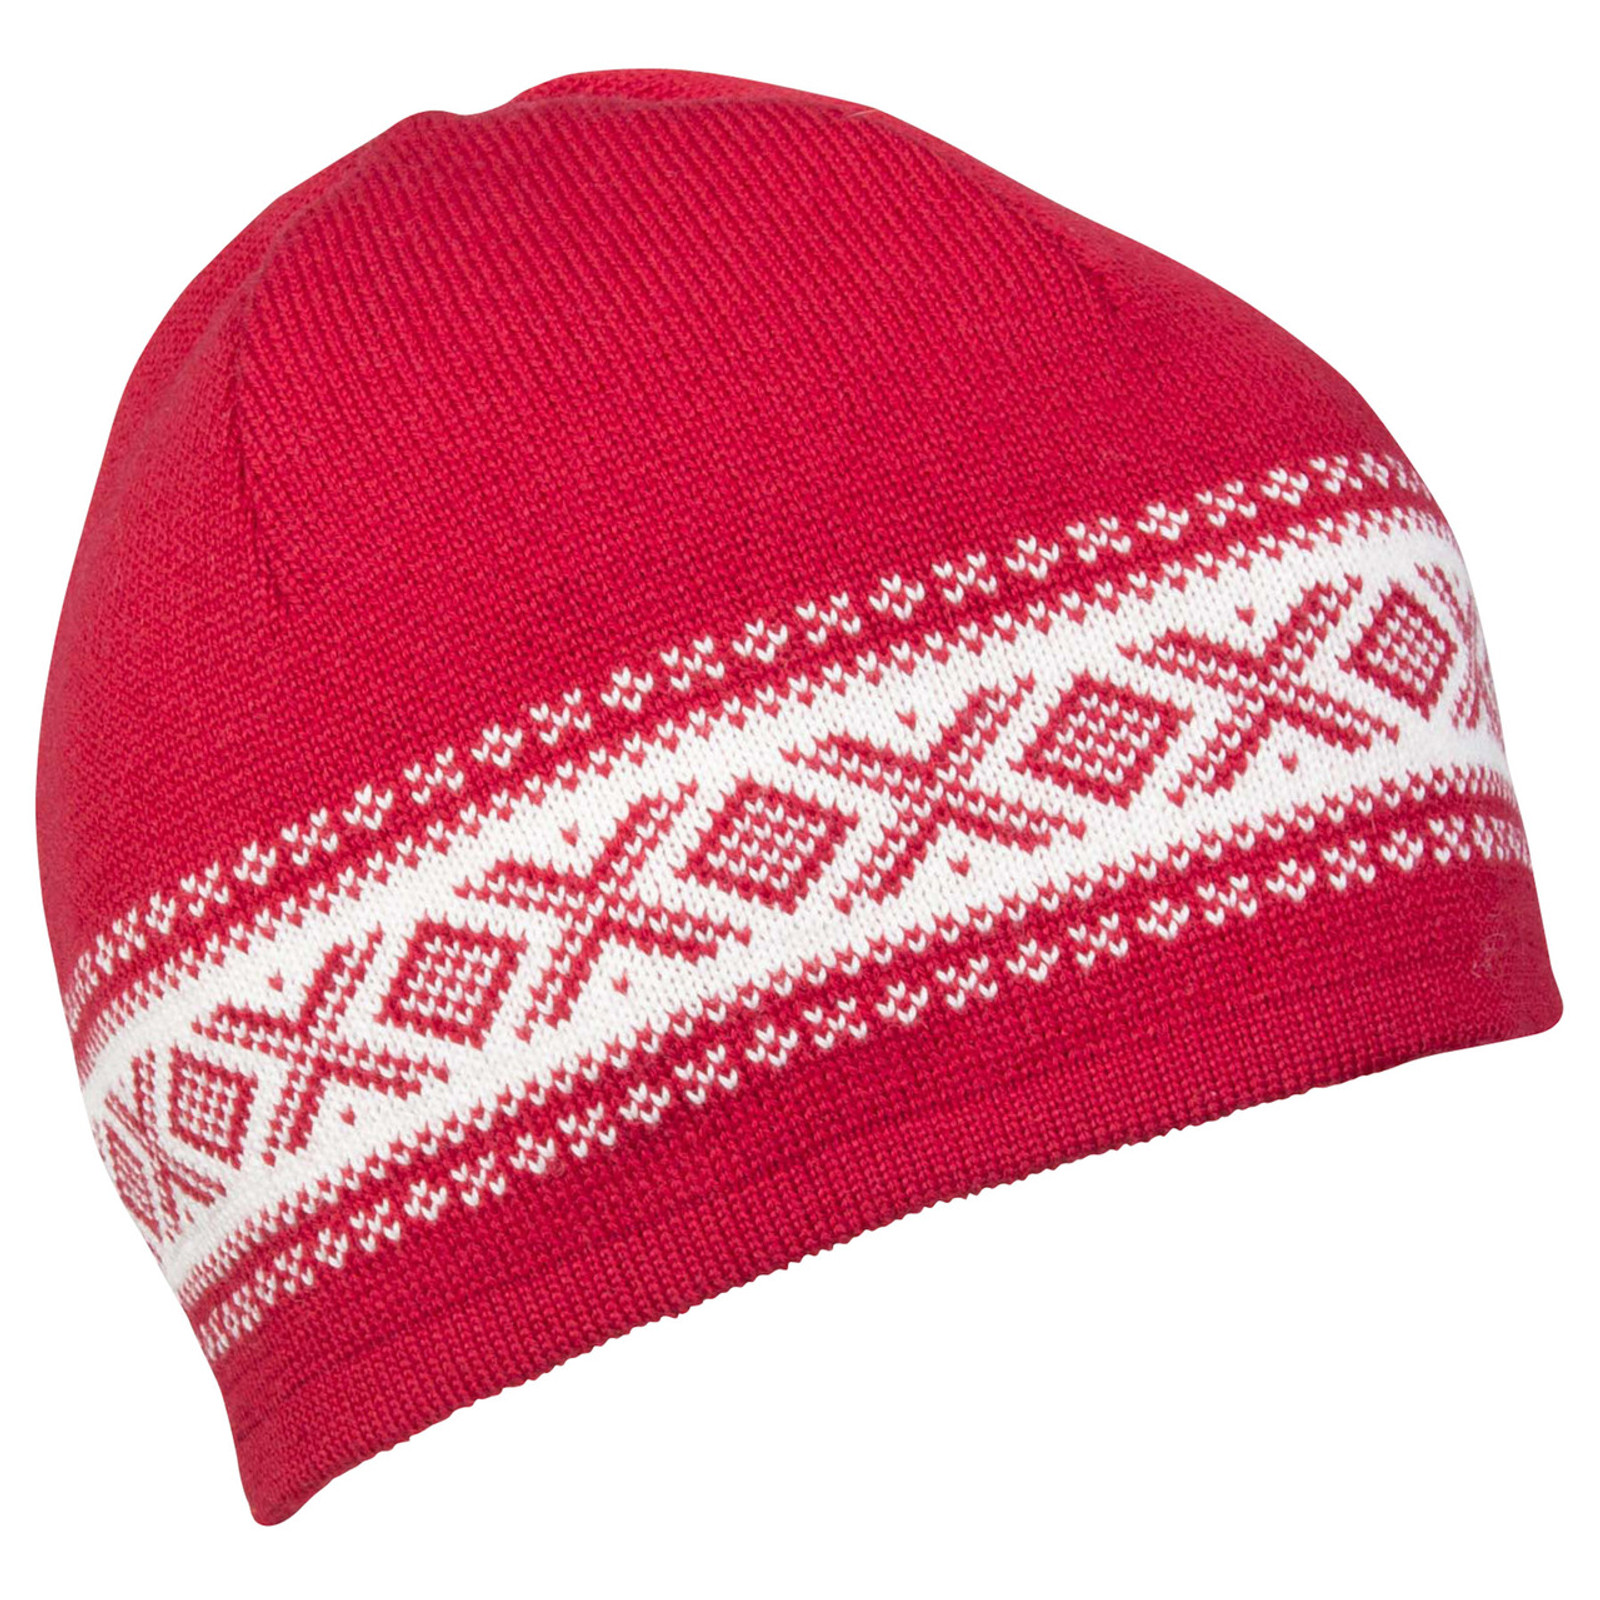 Dale of Norway, Cortina Merino Hat in Raspberry/Off White, 48211-B